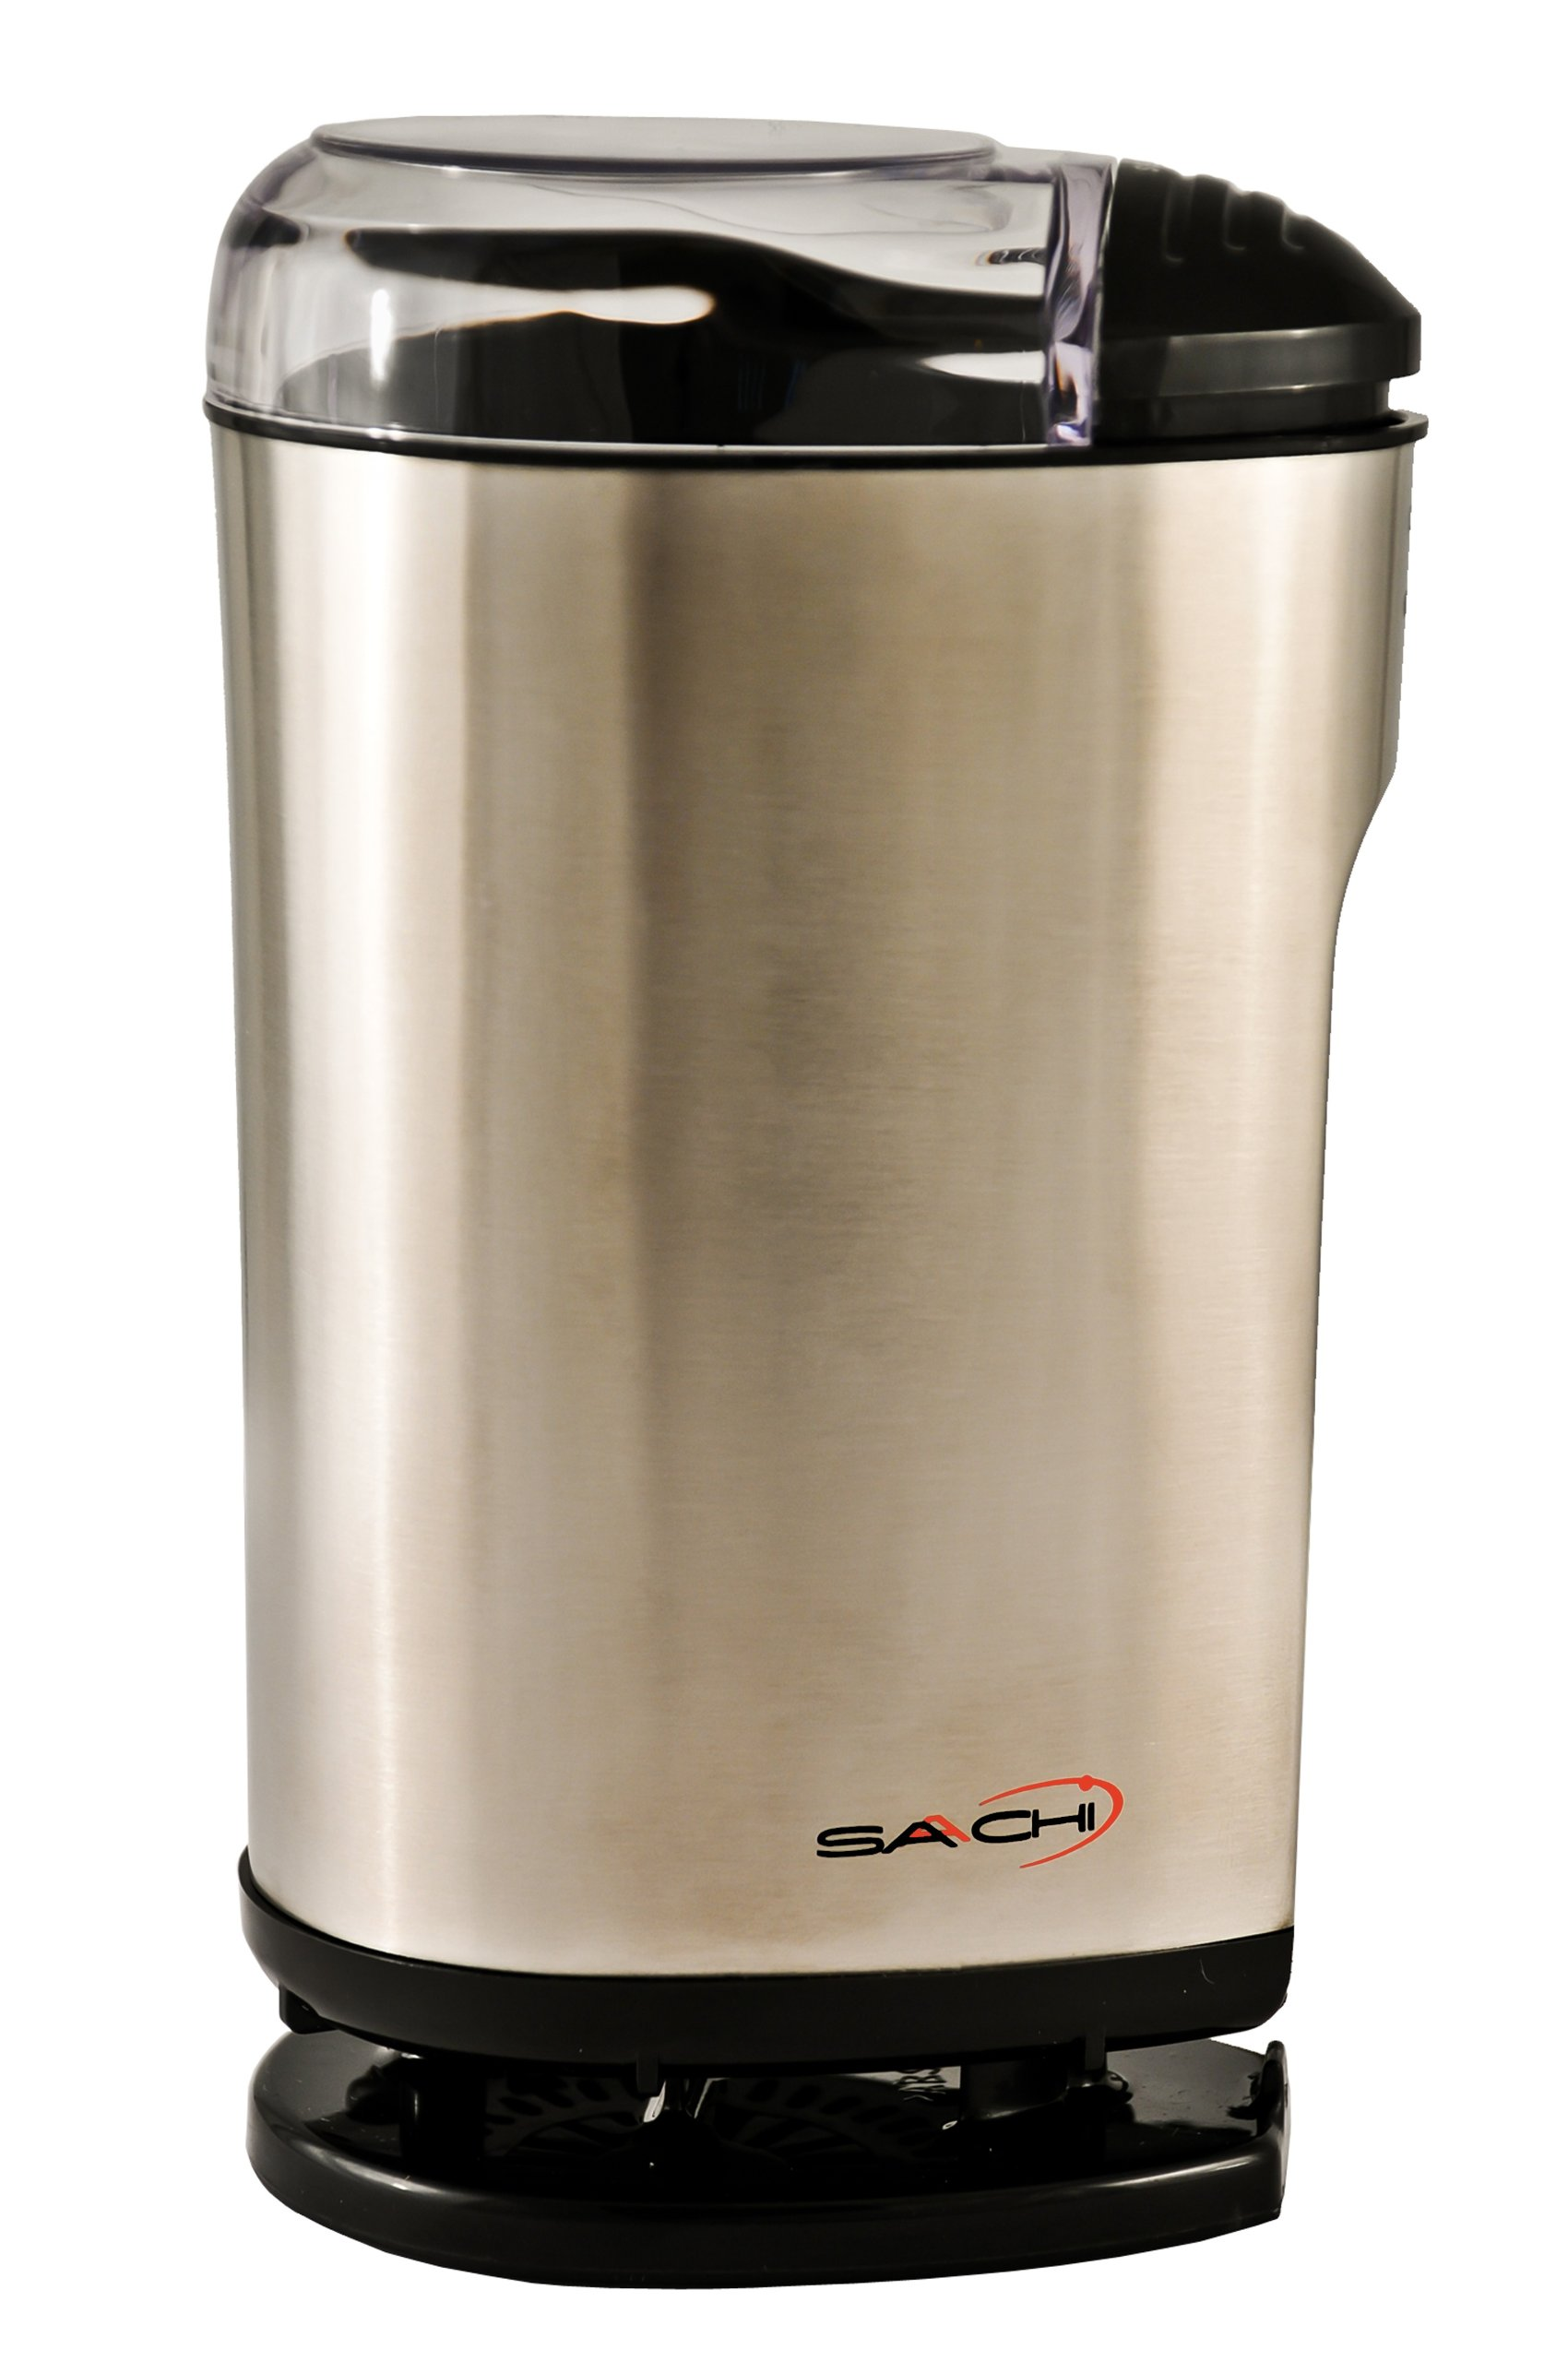 Saachi SA-1440 Electric Coffee Grinder, Small, Silver